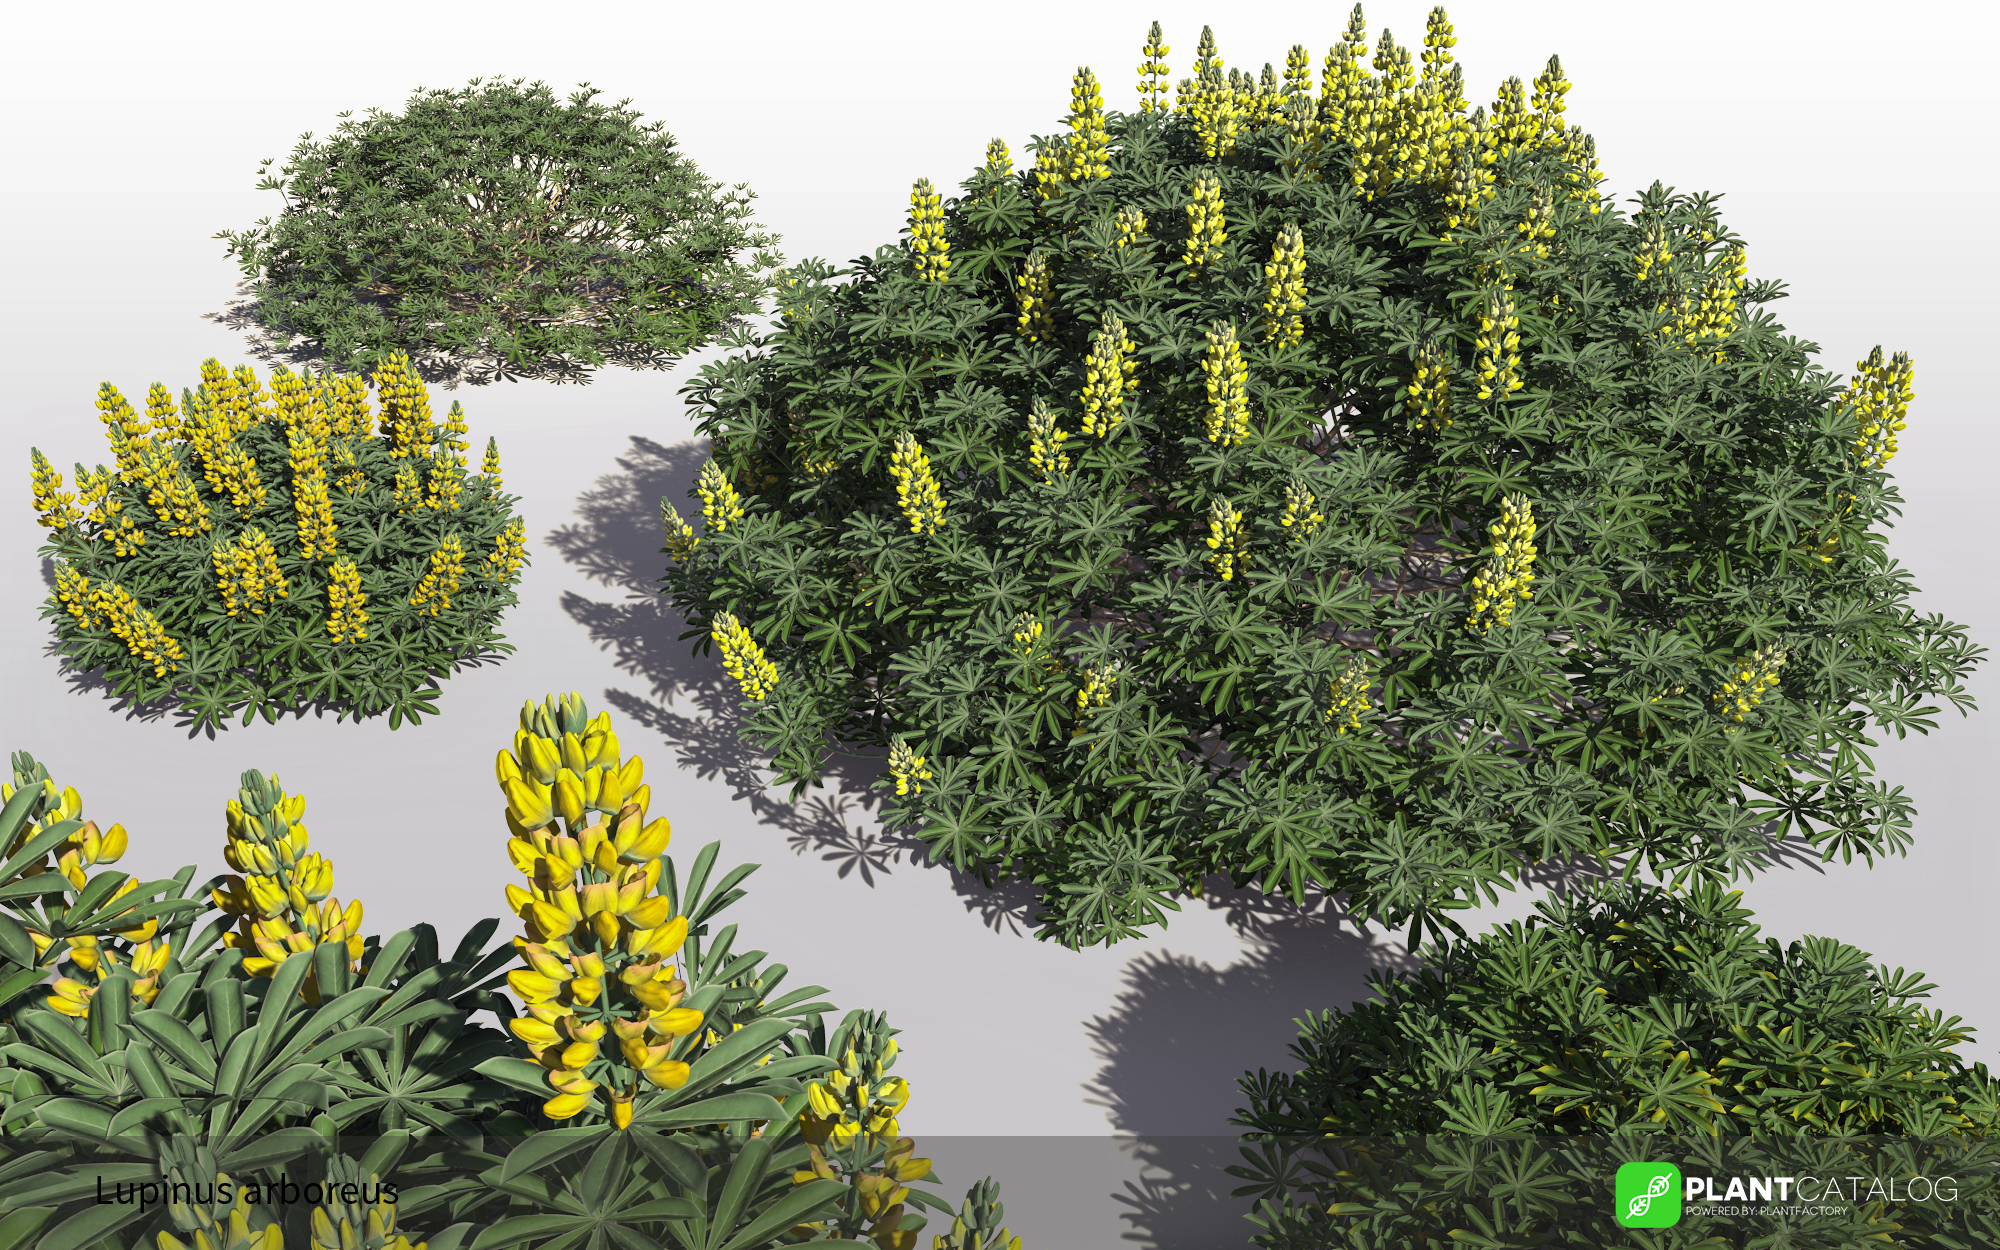 3D model of the Yellow bush lupine - Lupinus arboreus - from the PlantCatalog, rendered in VUE